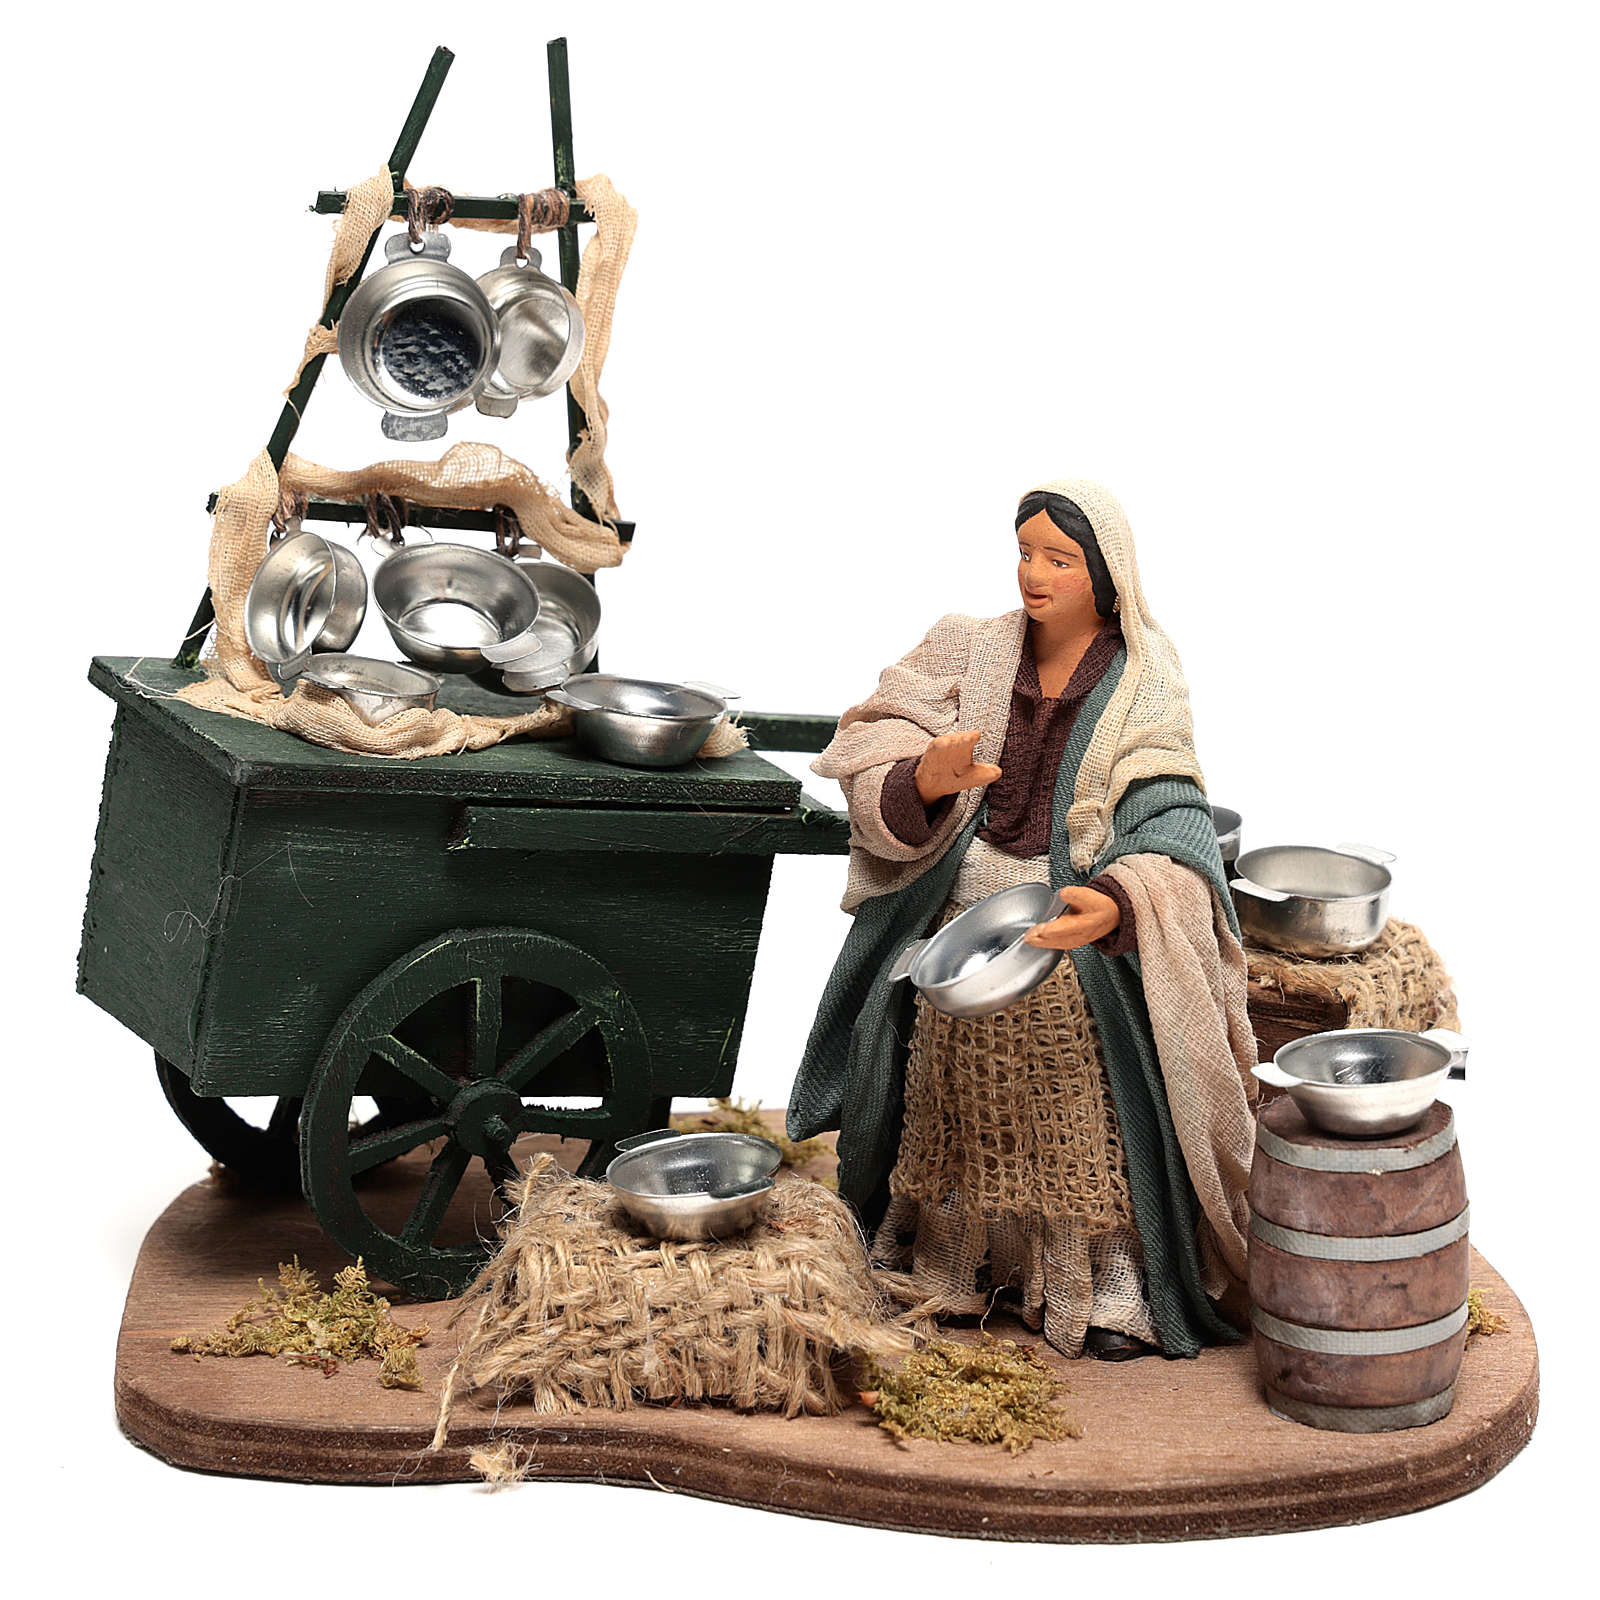 Potter with wagon and pots of 18x19x10 cm for Neapolitan Nativity Scene of 10 cm 4